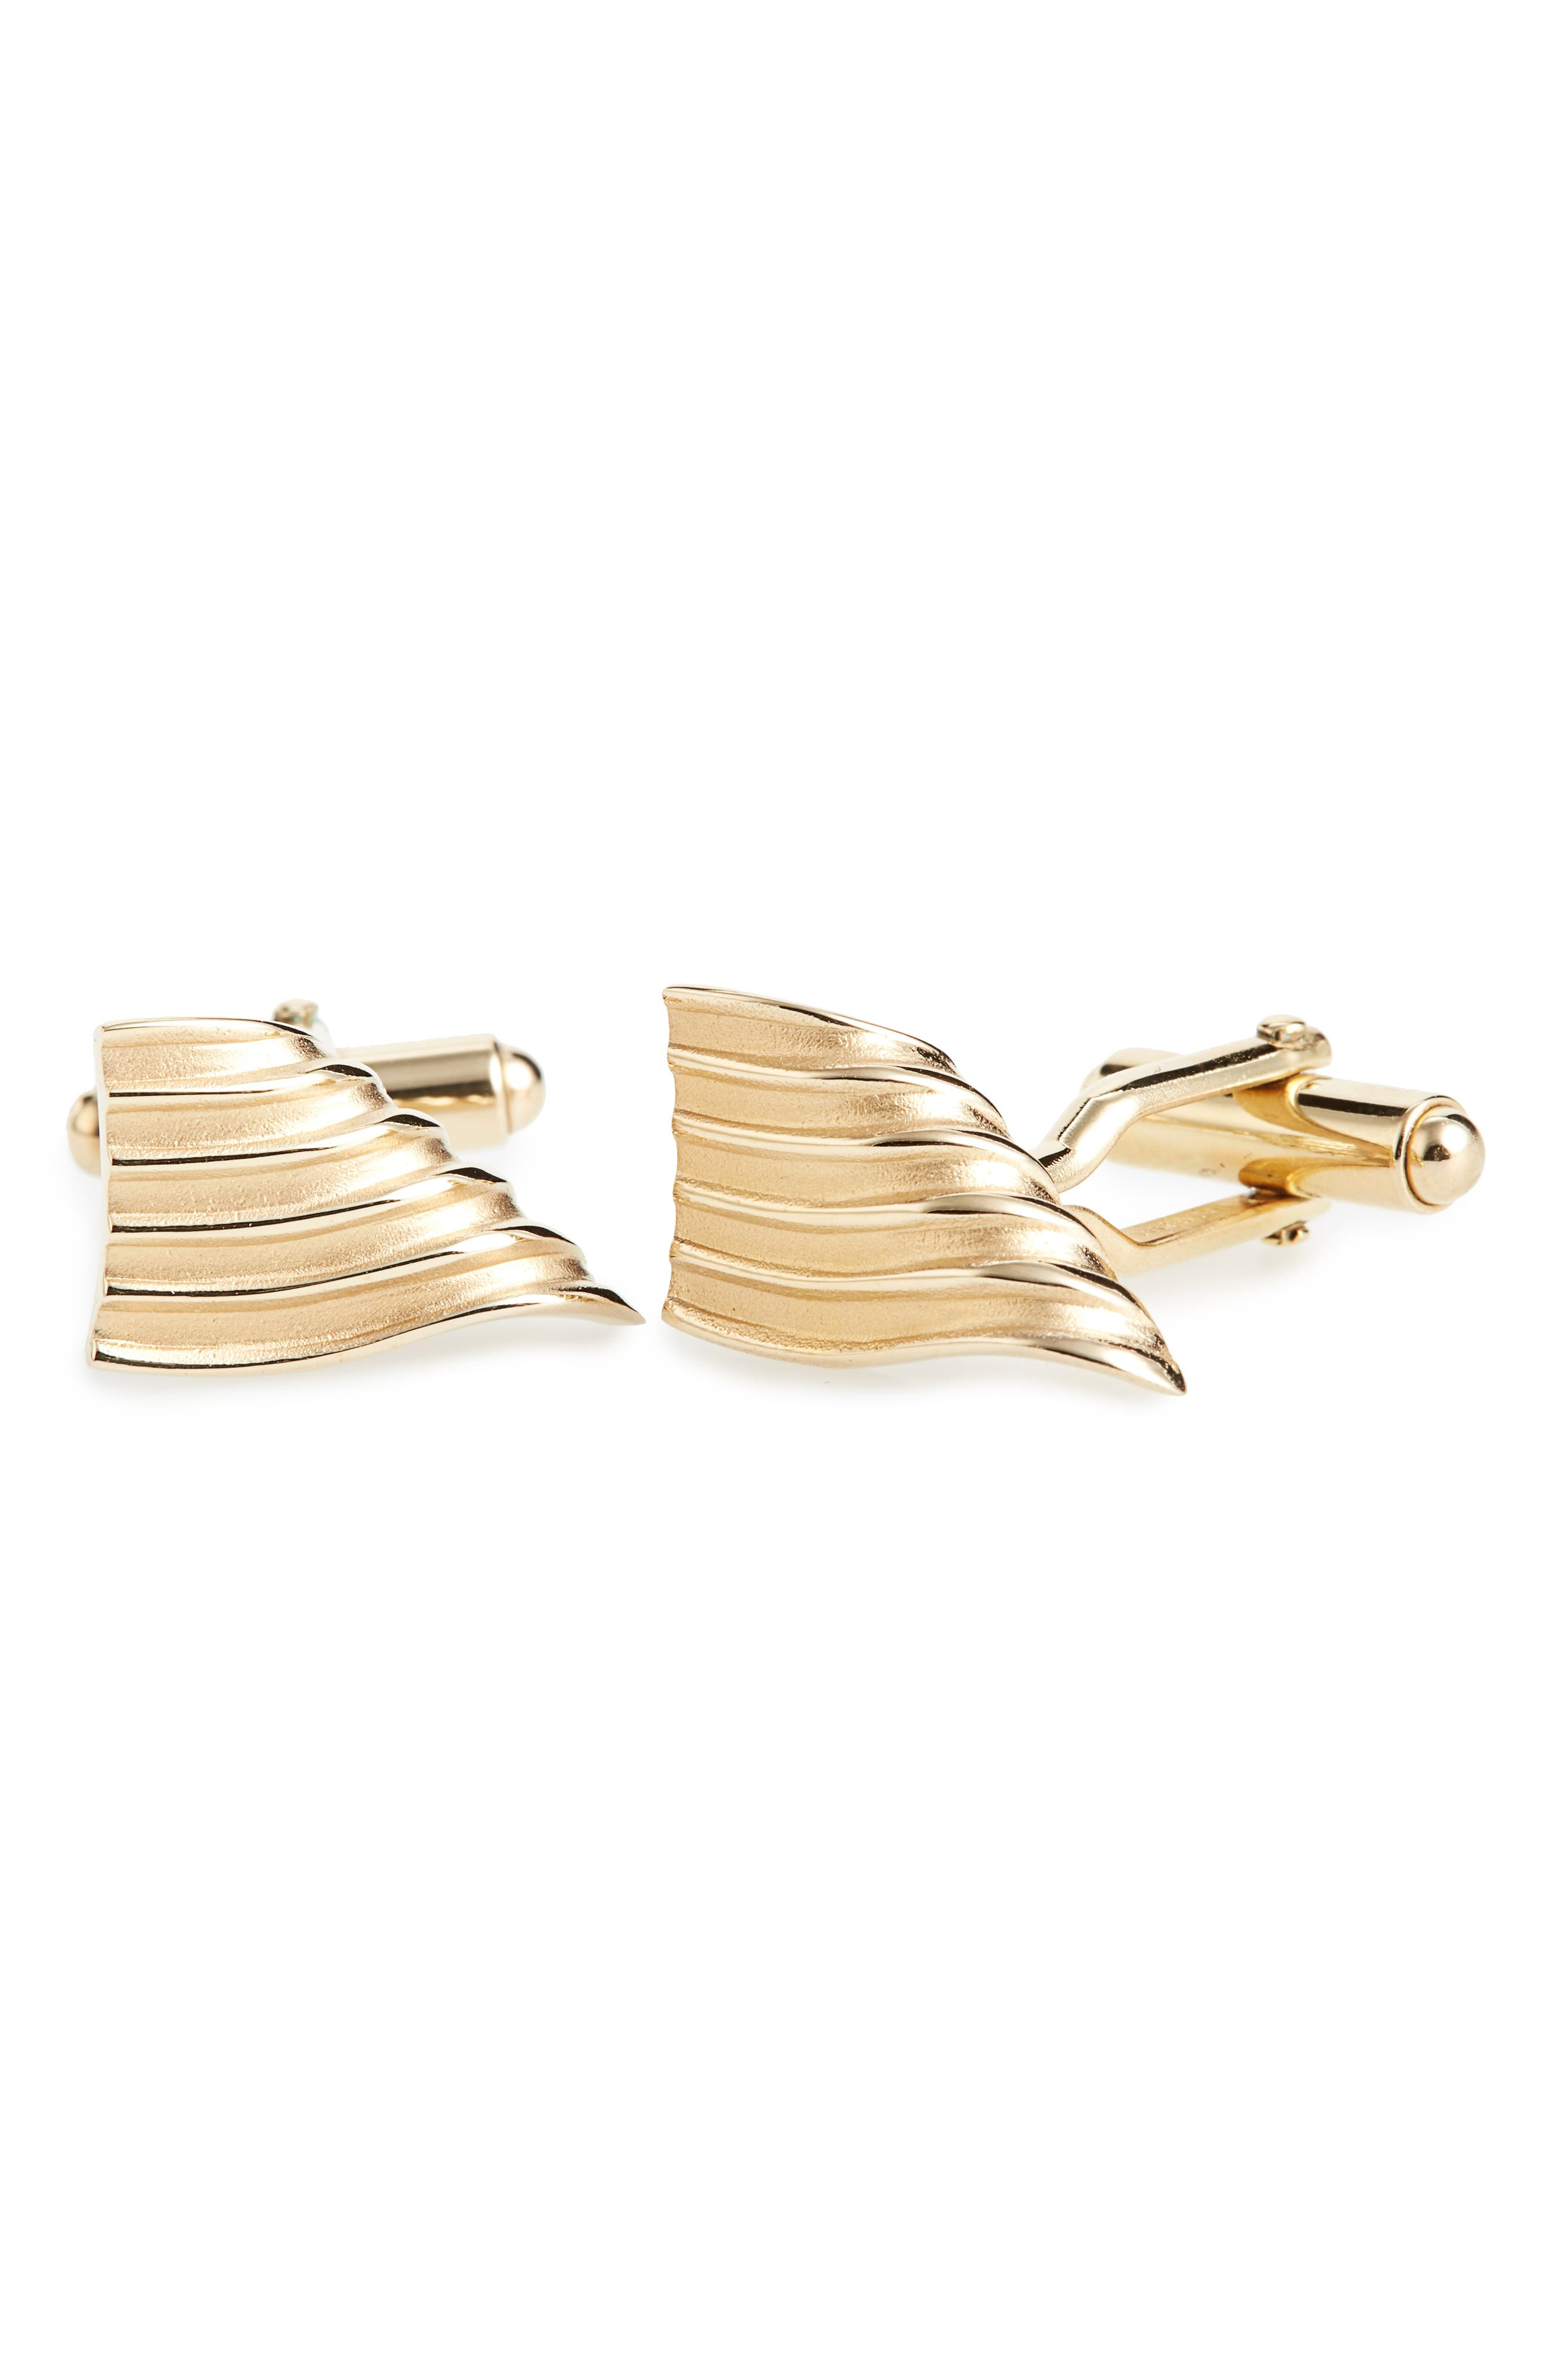 Curved & Grooved Cuff Links,                             Main thumbnail 2, color,